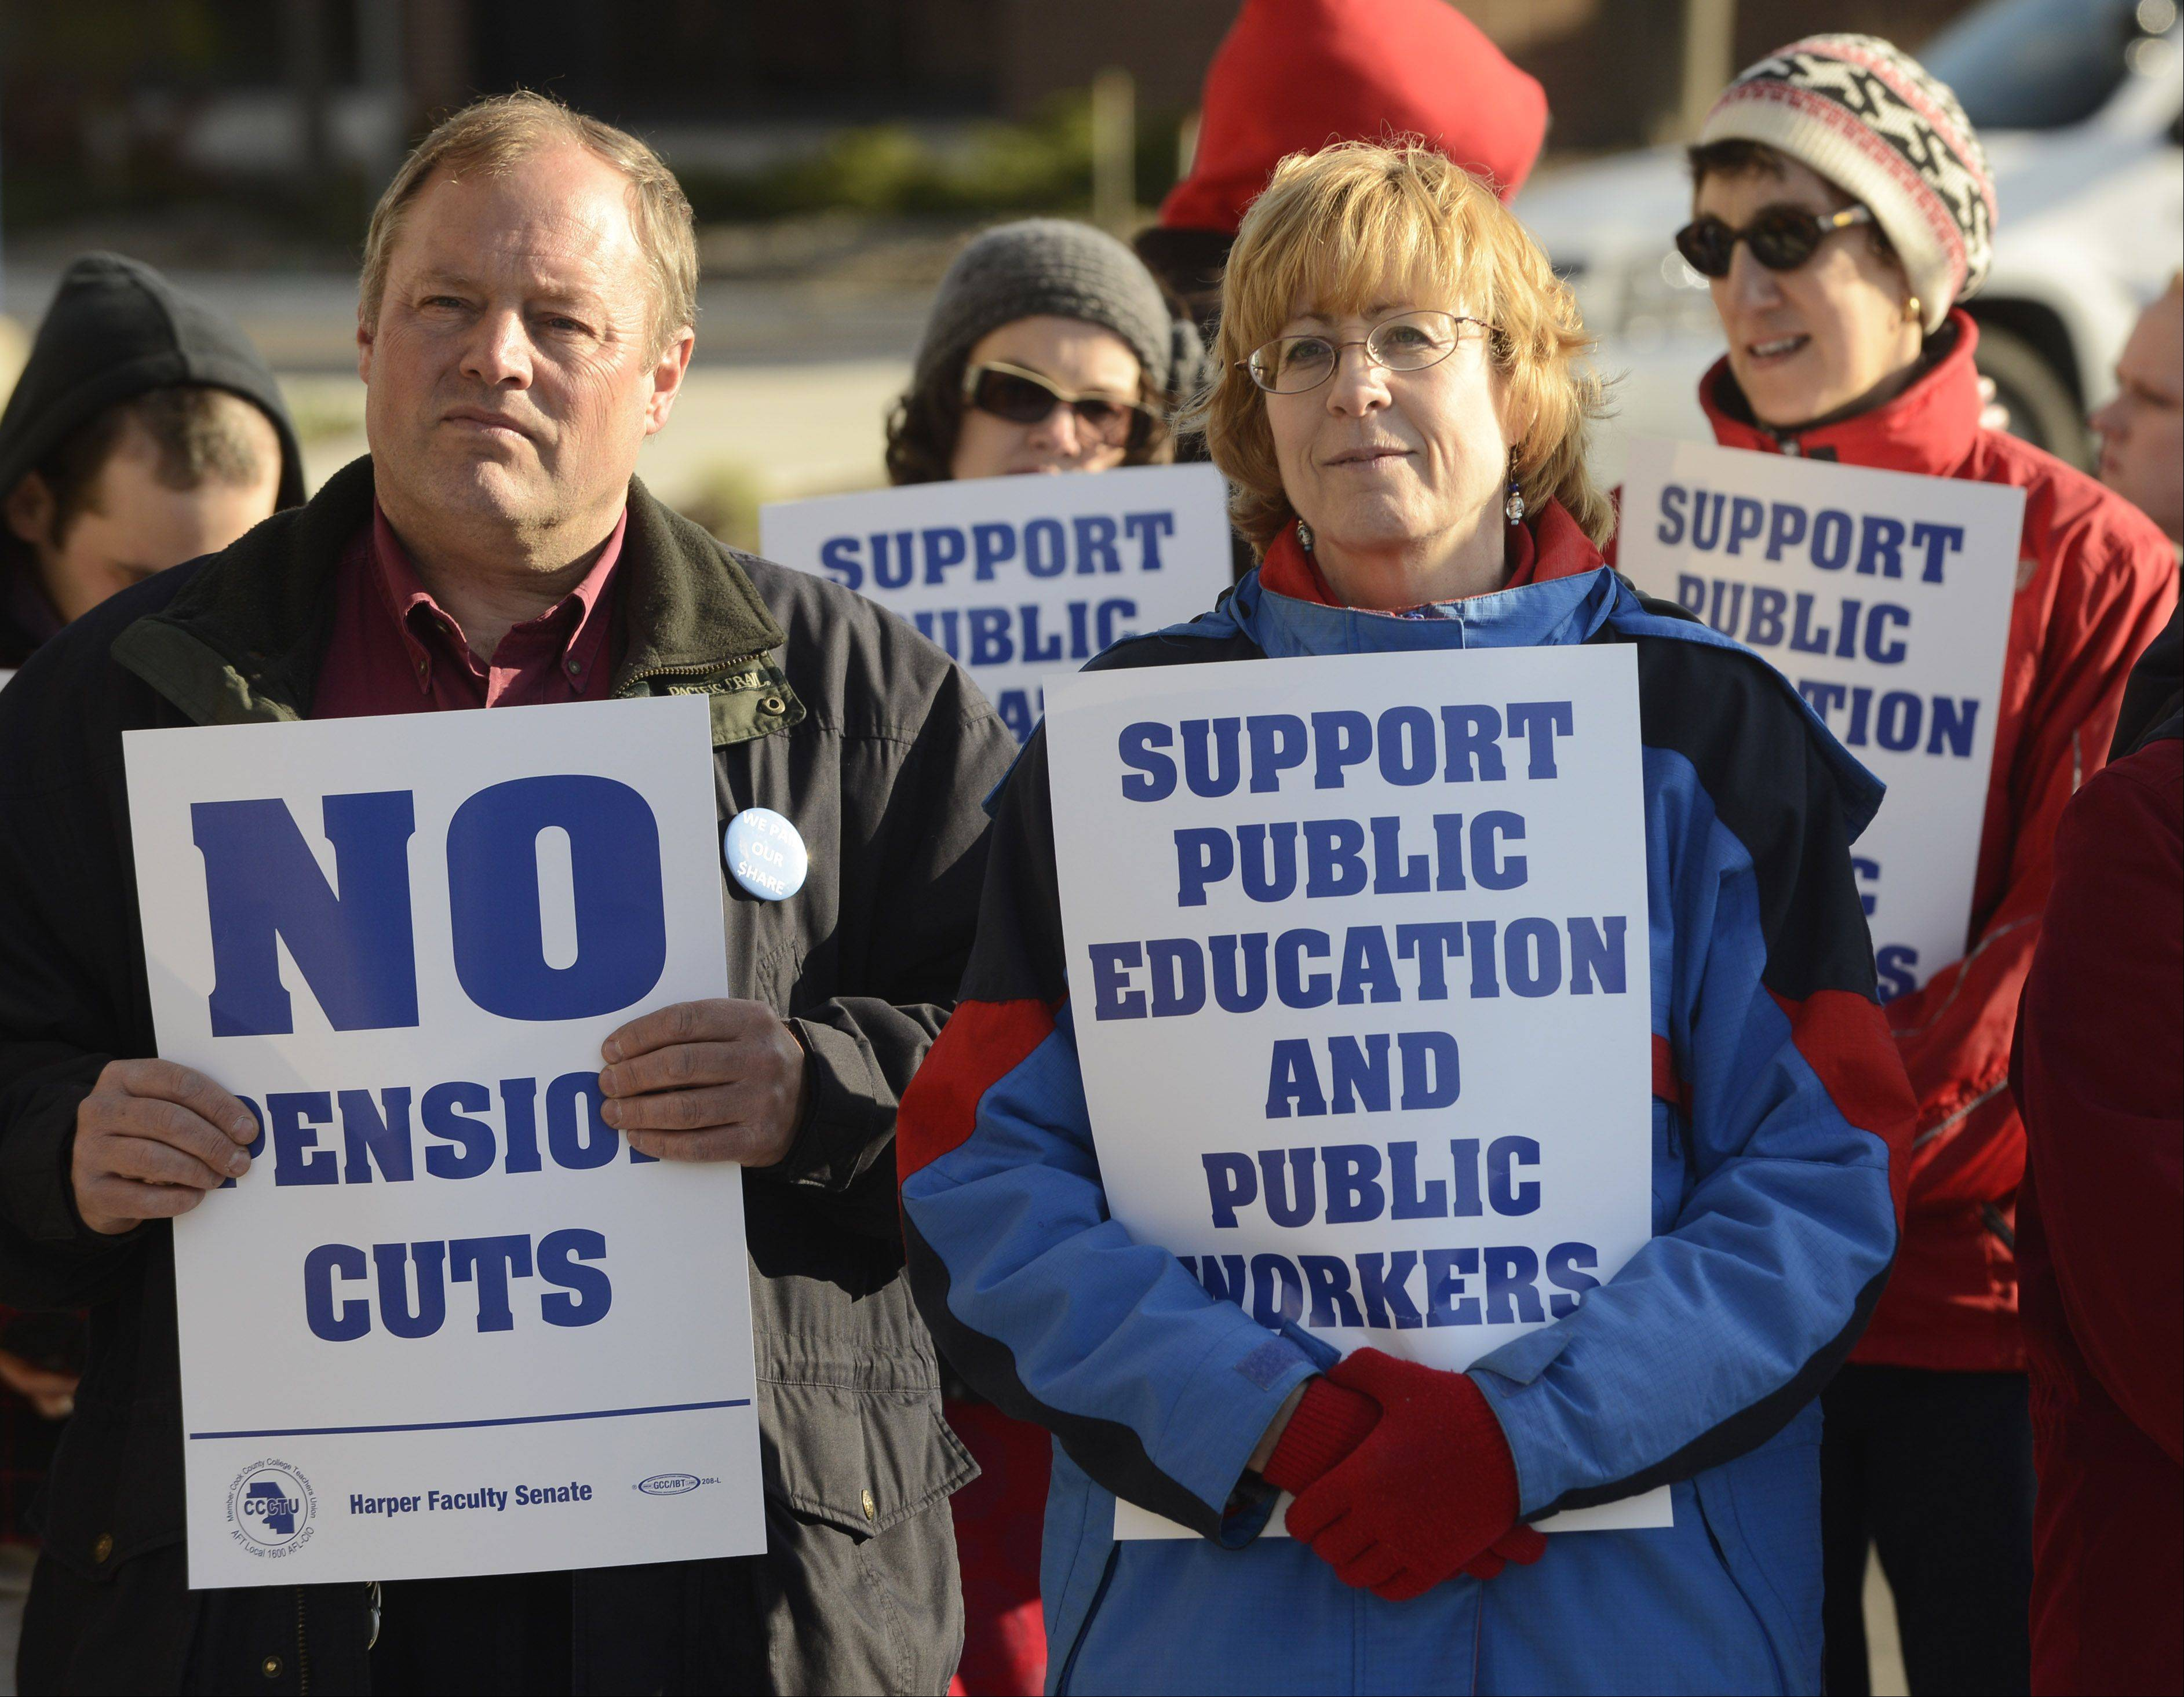 Retired Harper College teacher Randy Schietzelt, left, and current faculty member Virginia Turner hold their signs while protesting outside before the pension reform forum Wednesday night at Harper.